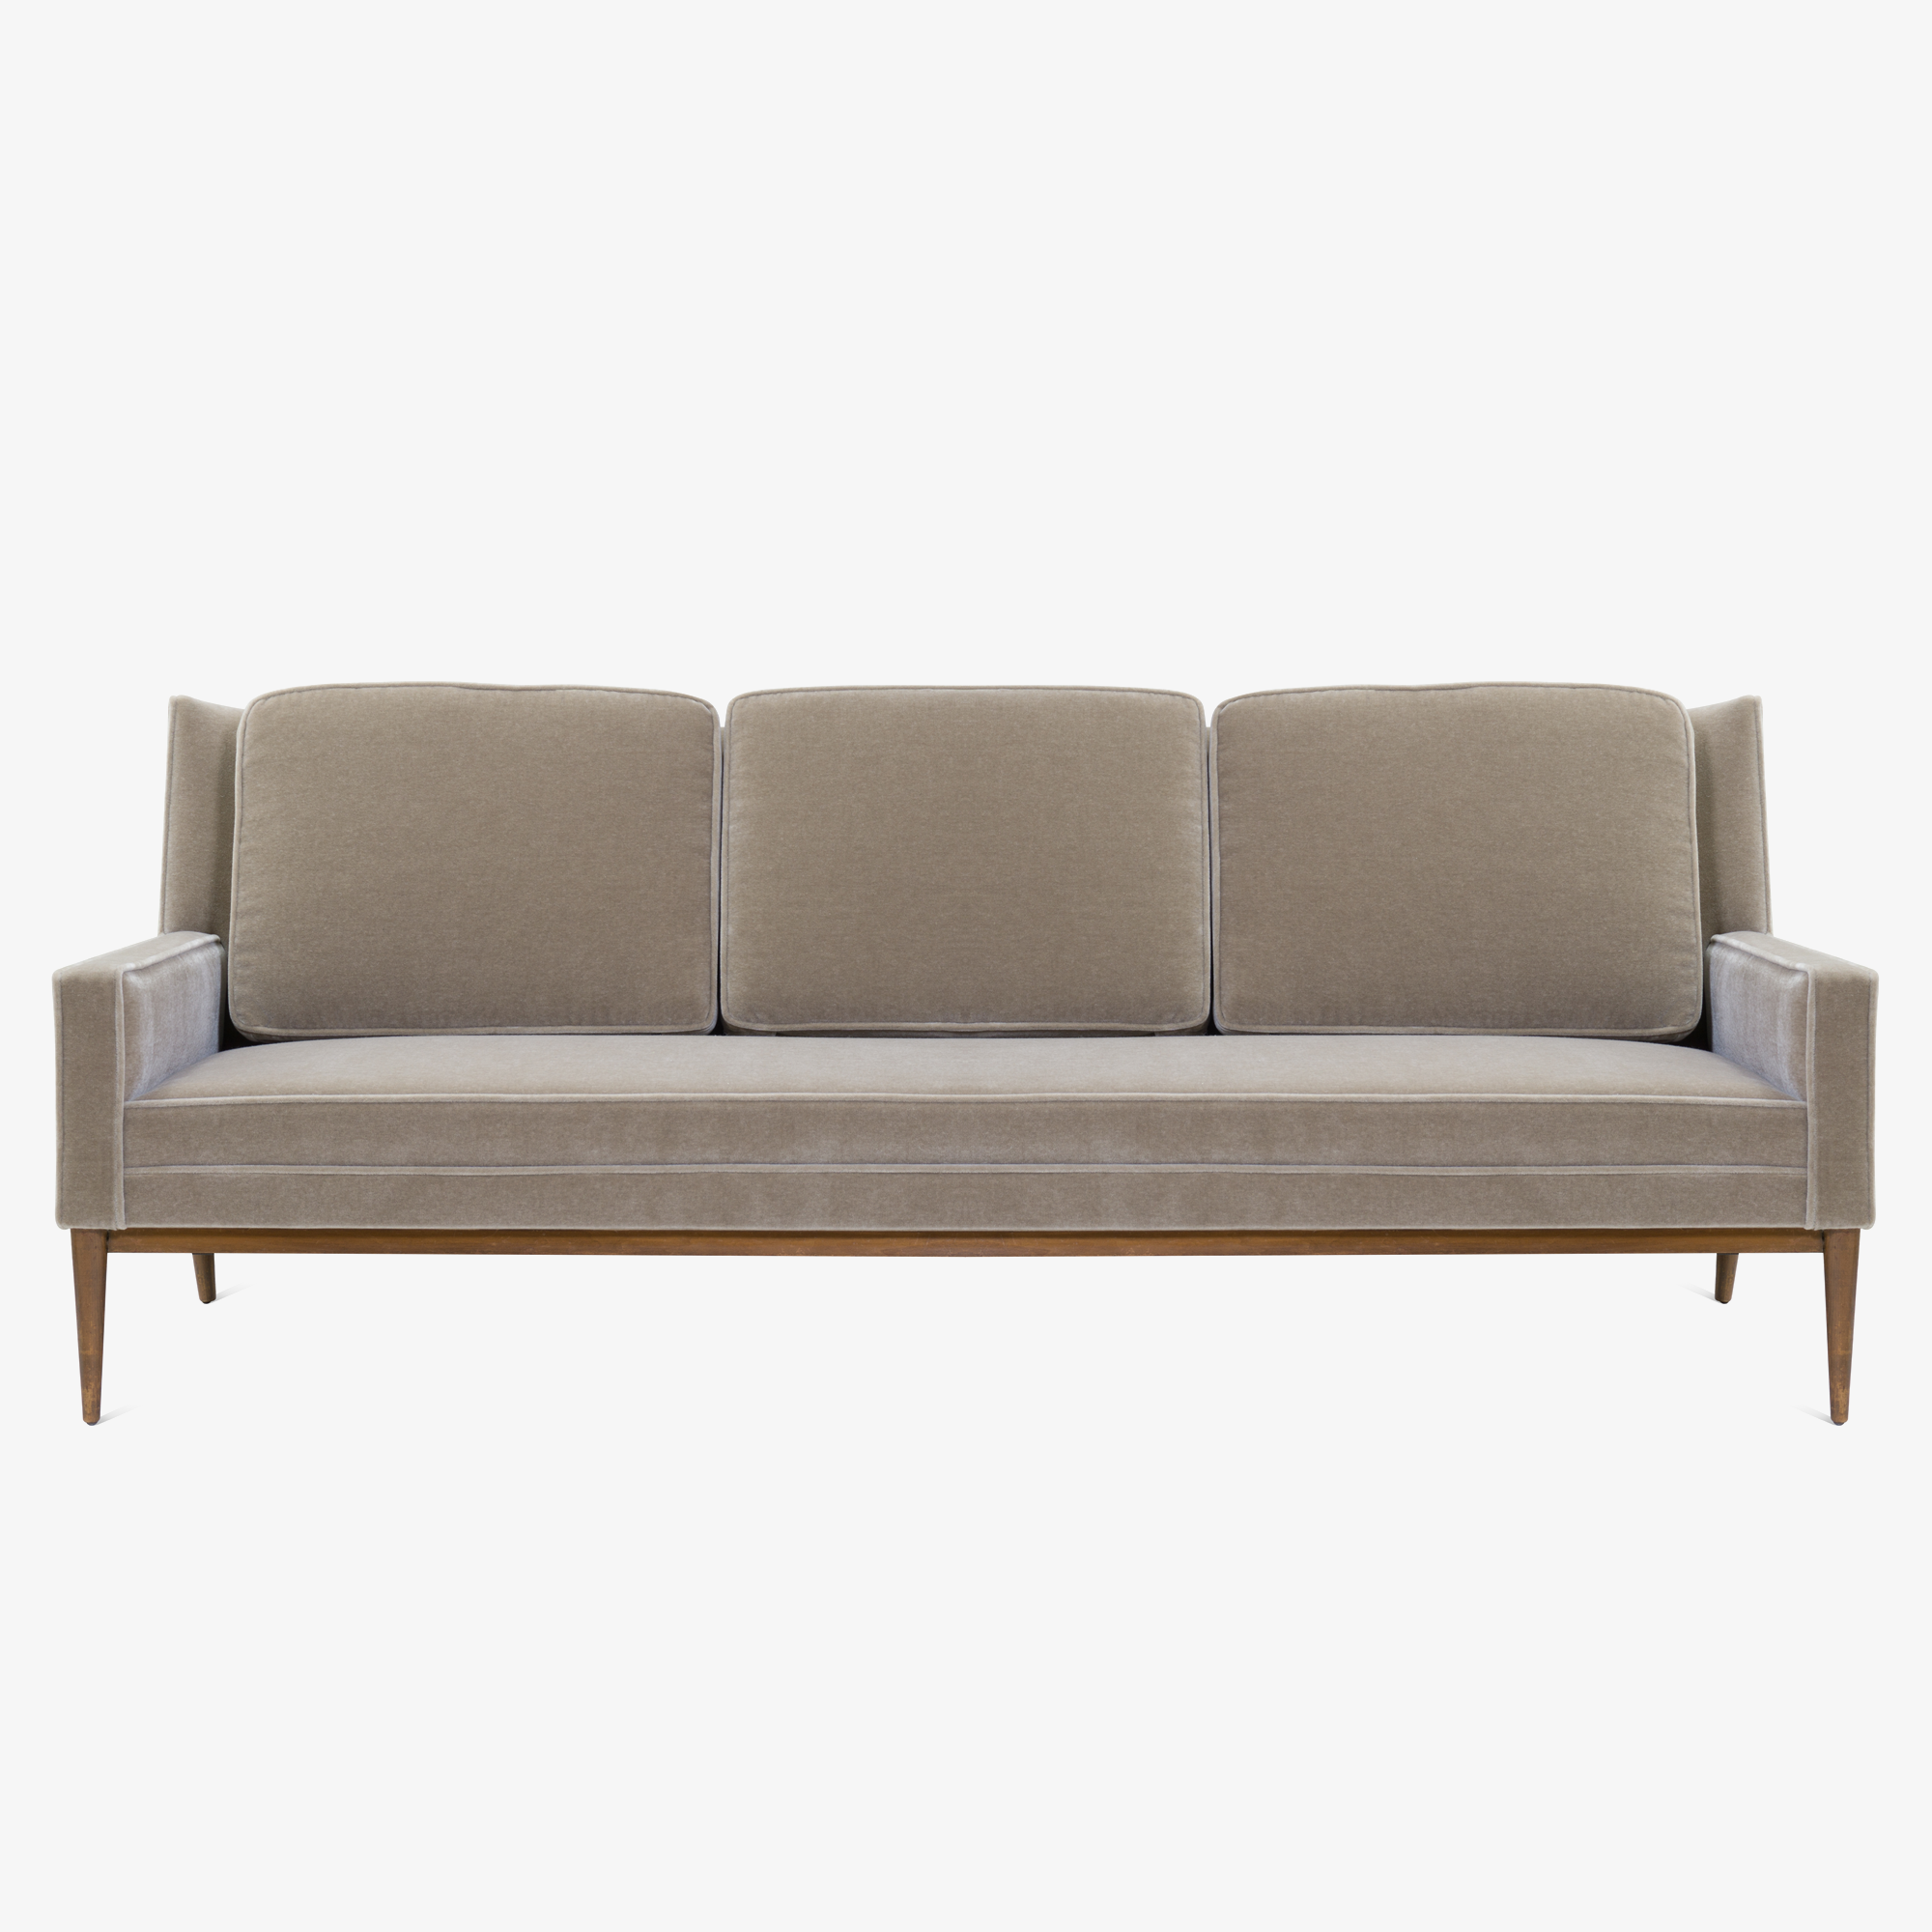 3-Seat %22Model 1307%22 Sofa in Mohair by Paul McCobb for Directional.png